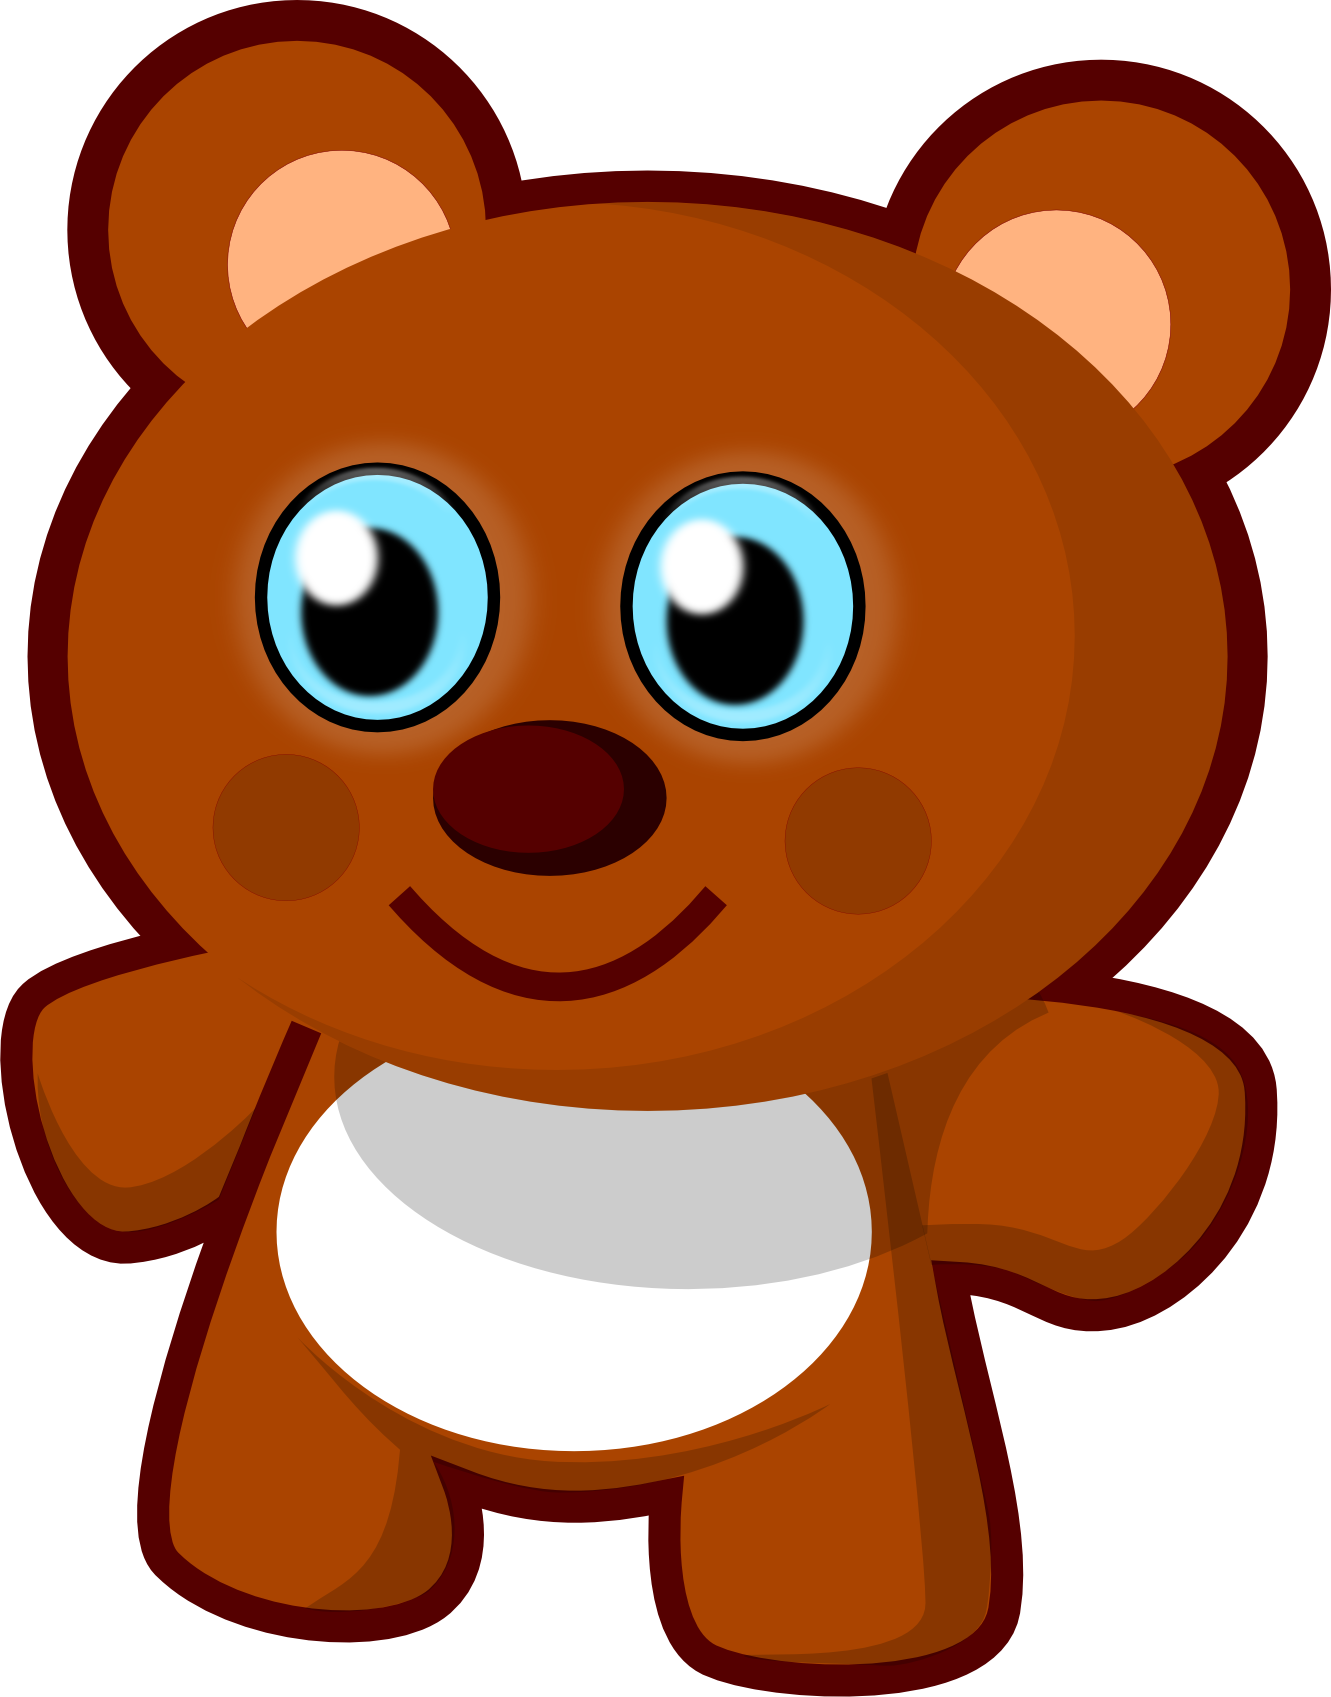 Clip Art: Cute Bear Teddy Bear Animal ... - ClipArt Best - ClipArt ...